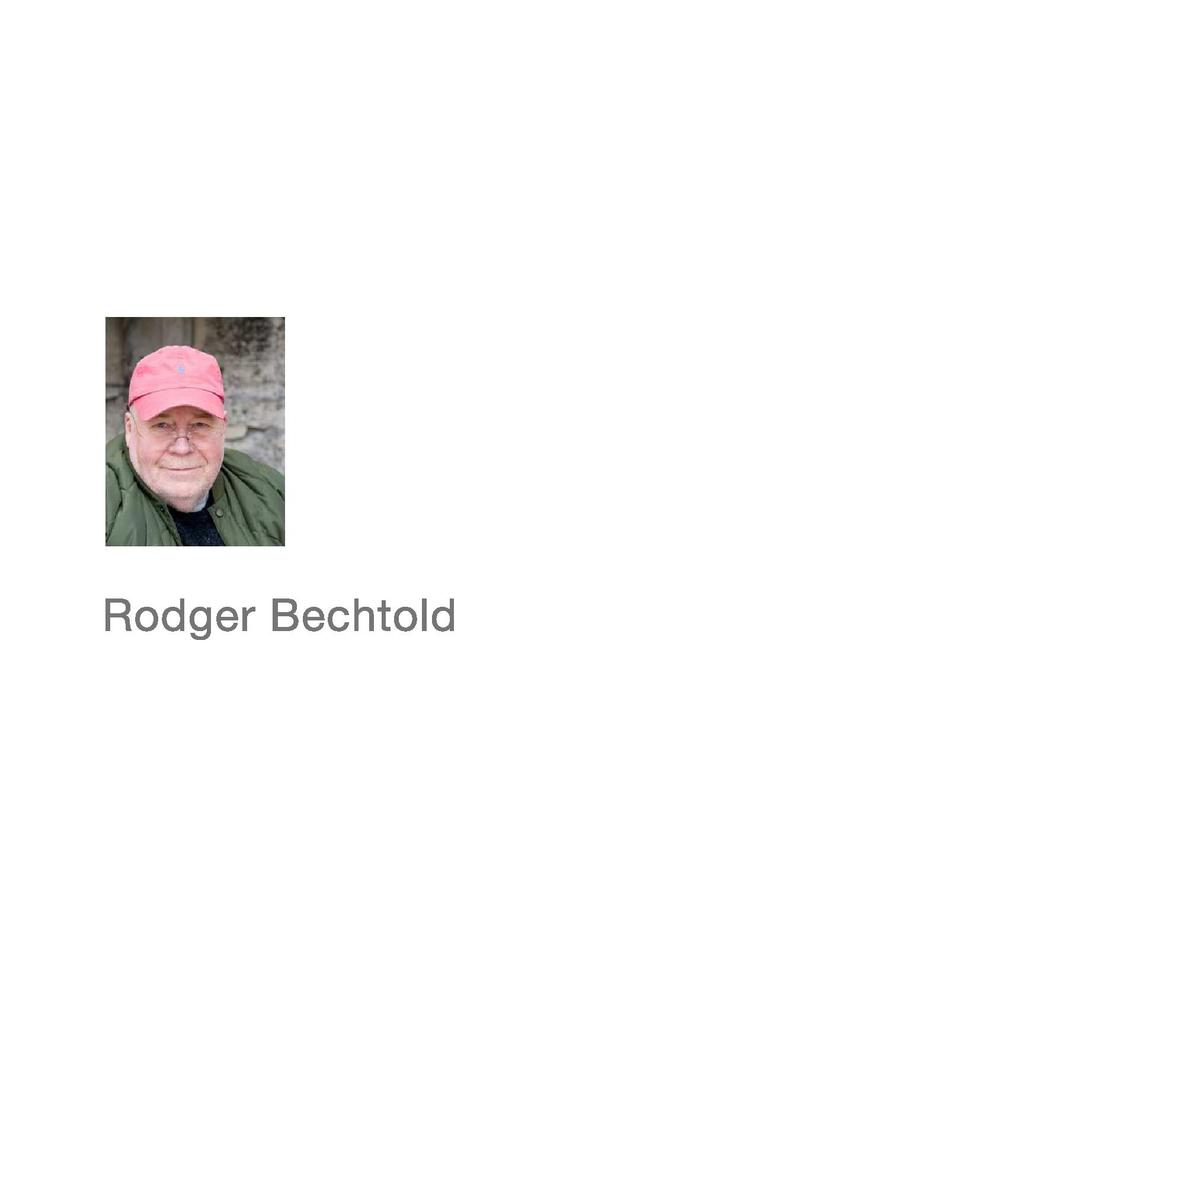 Rodger Bechtold